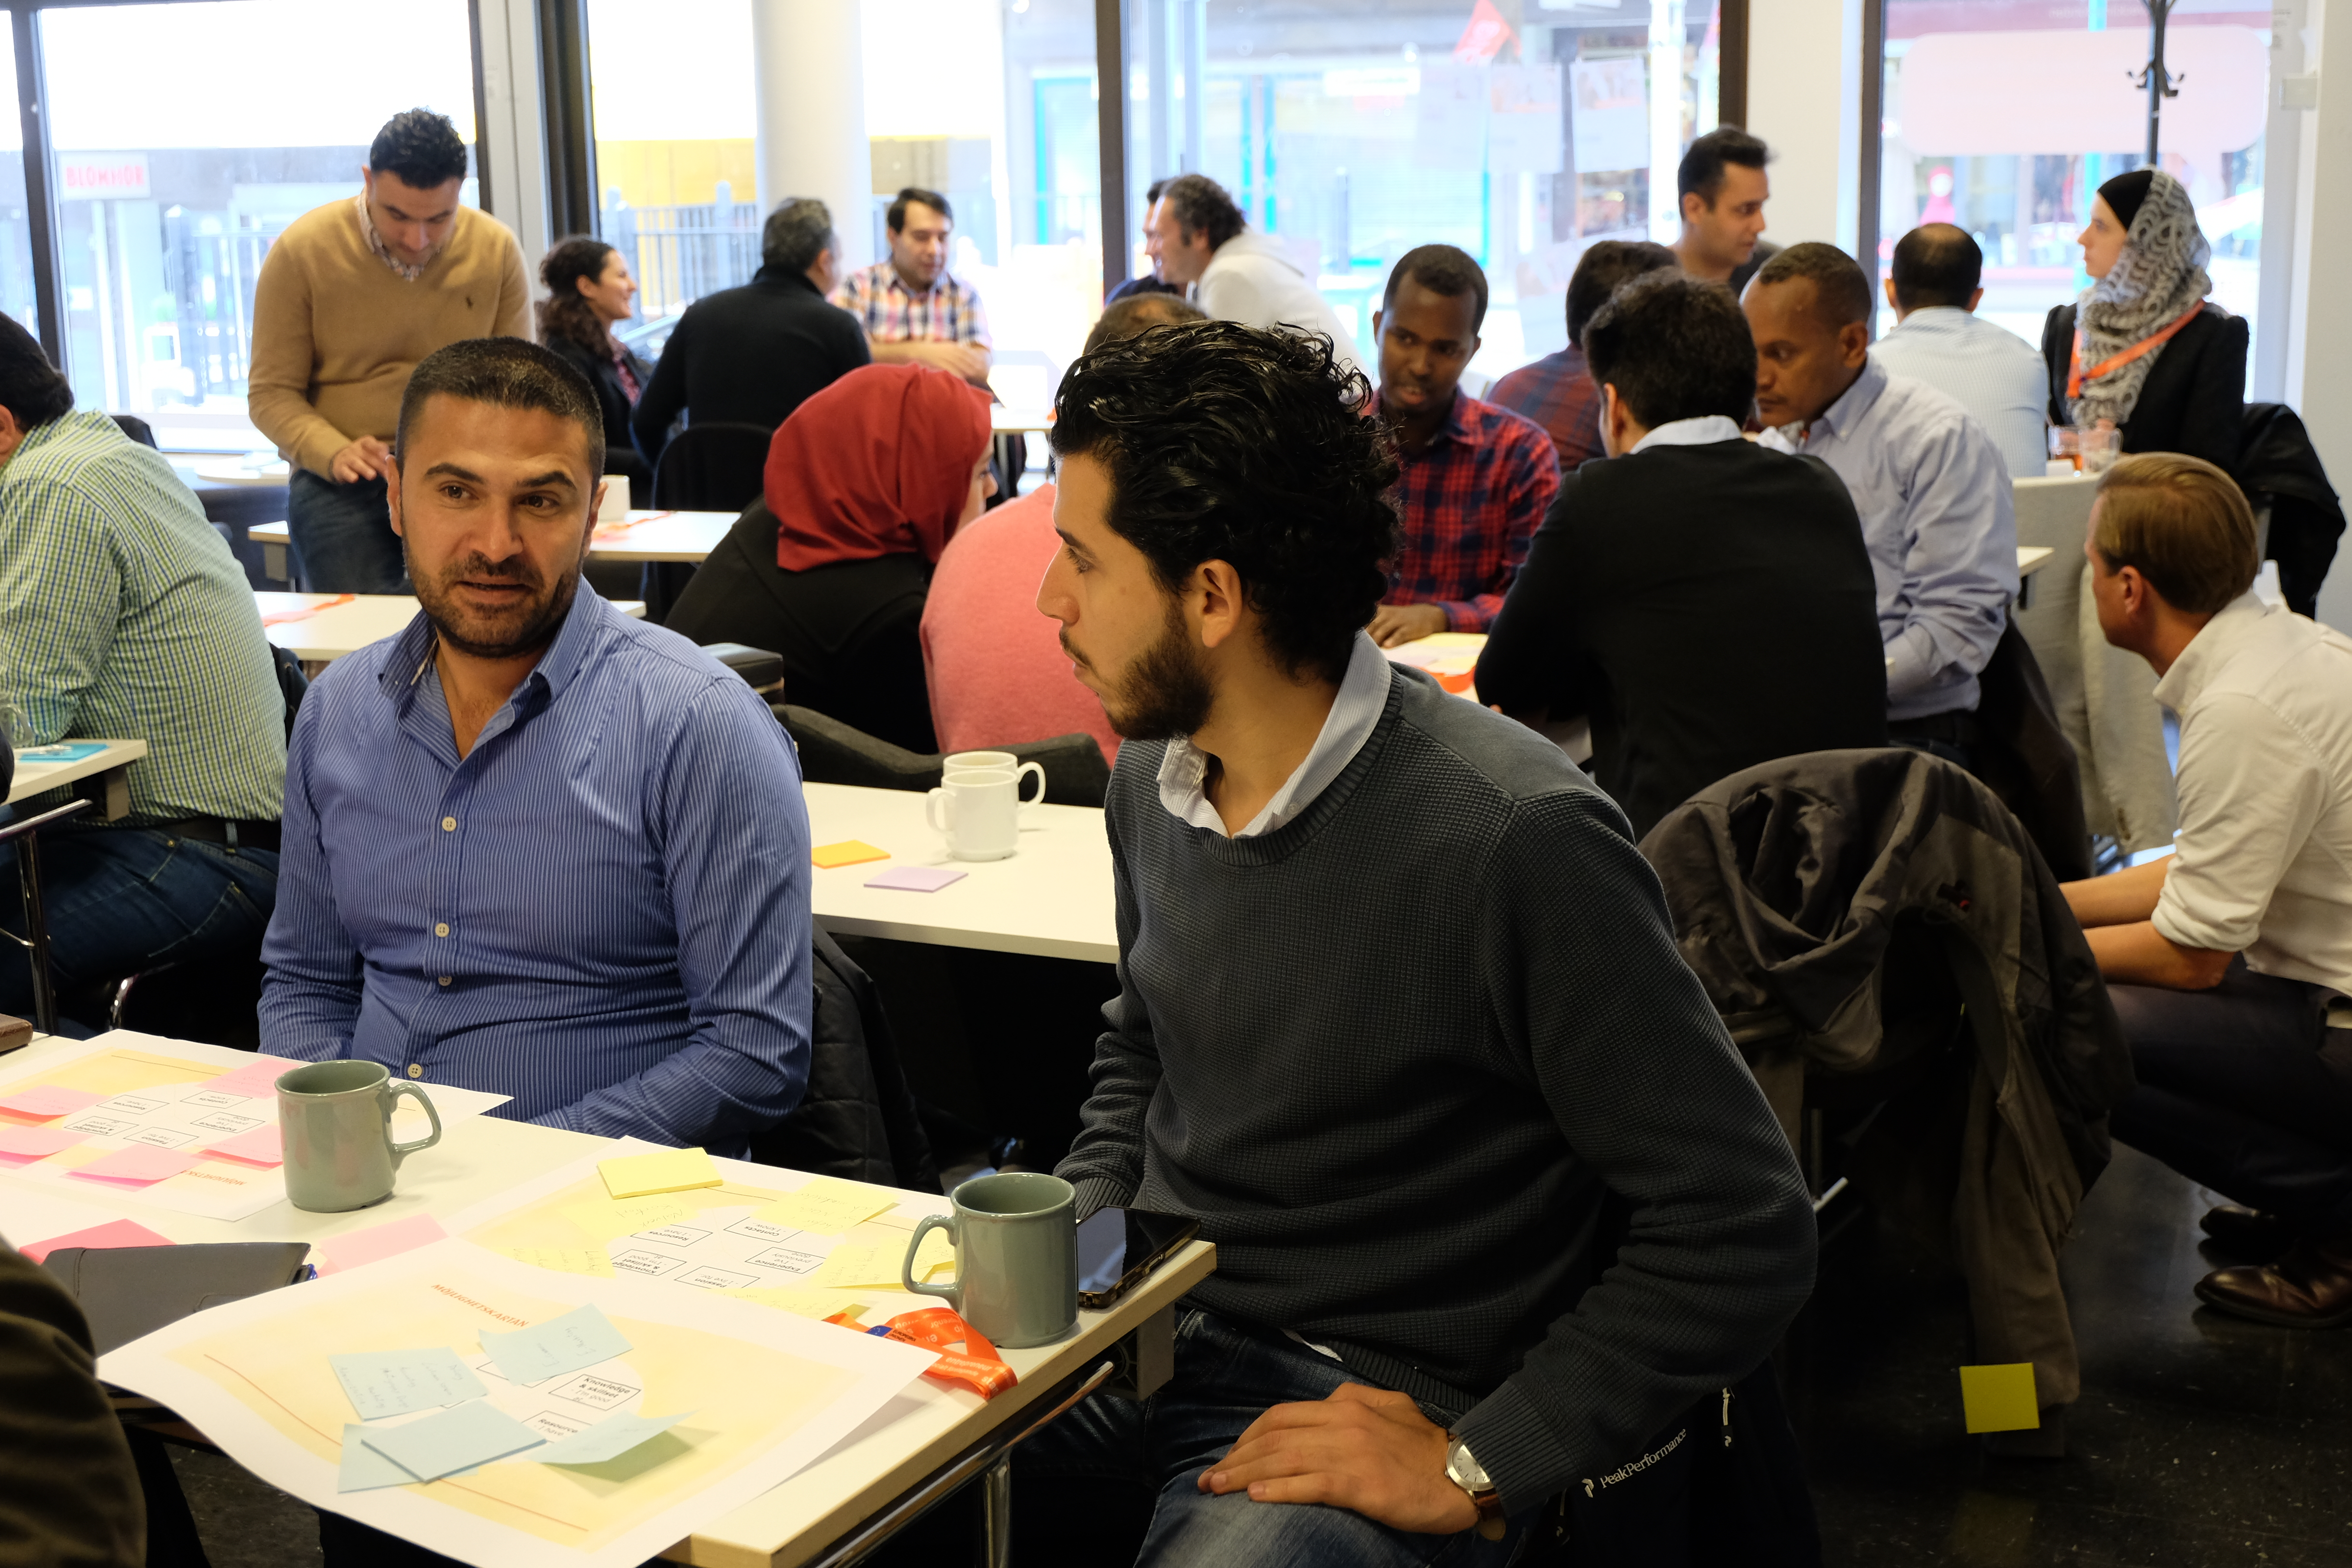 start-up-fasttrack-1-photo-by-jennie-olsson